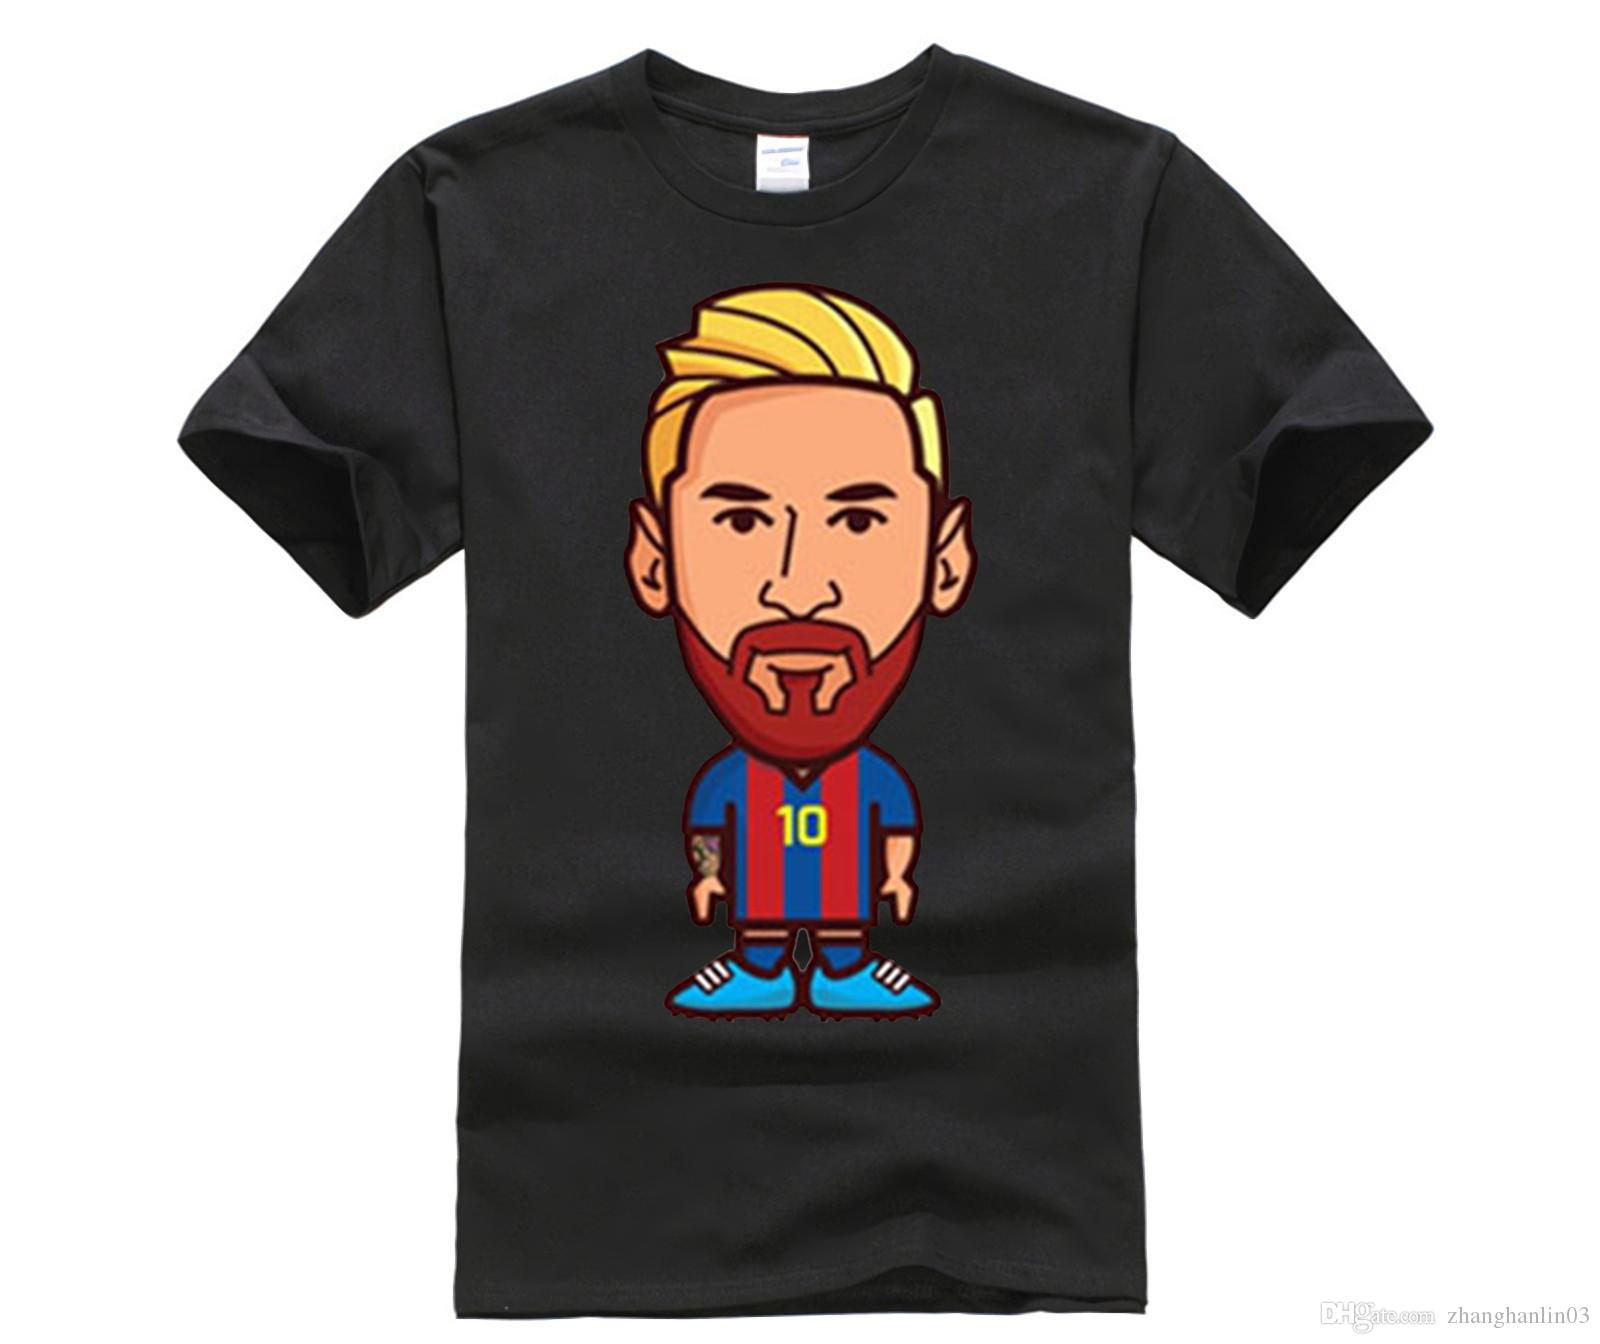 dfe32e6d38e Funny Men T Shirt Lionel Messi Neymar Camp Nou La Liga Champions For 100%  Cotton T Shirt Jersey Fans For Shirt Lovers Funny T Shirts Cheap As T Shirts  From ...